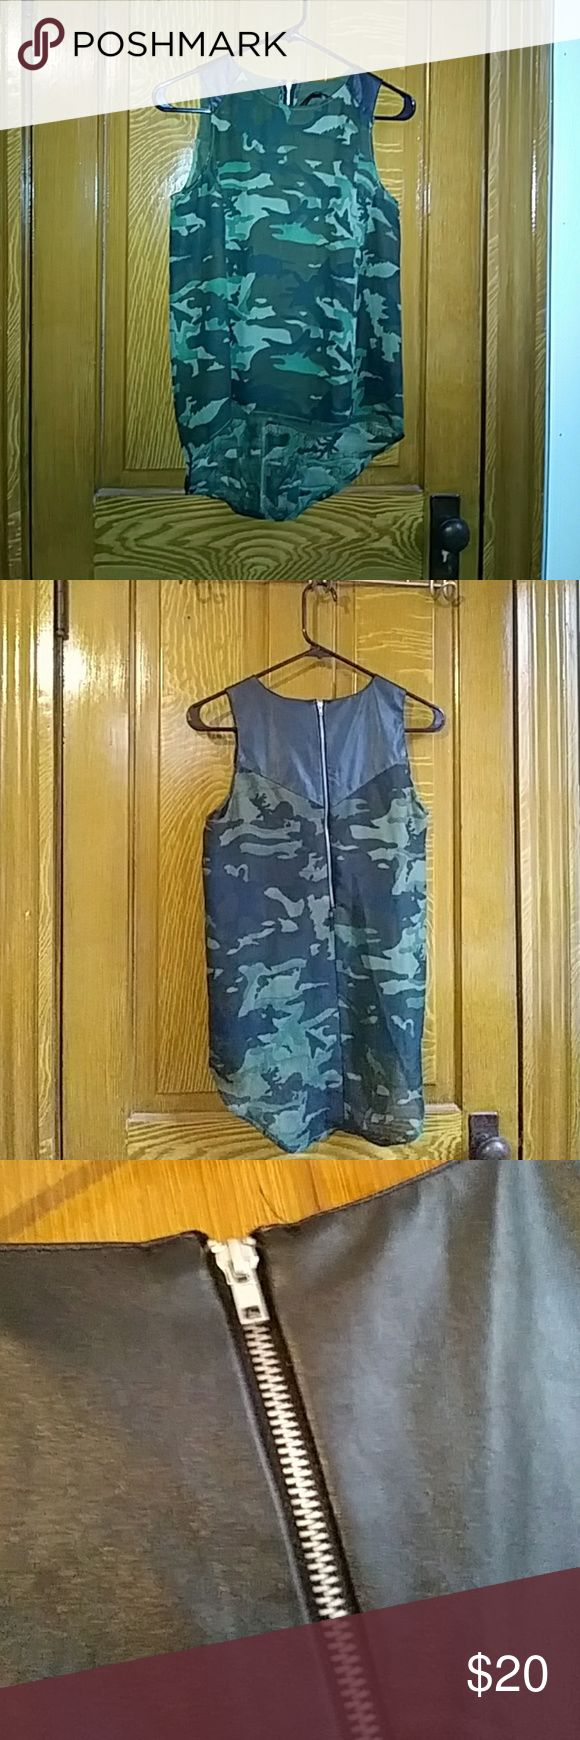 Ali & Kris camo tank top Perfect condition Leather on shoulders Zipper in back Float and comfortable Ali & Kris Tops Tank Tops